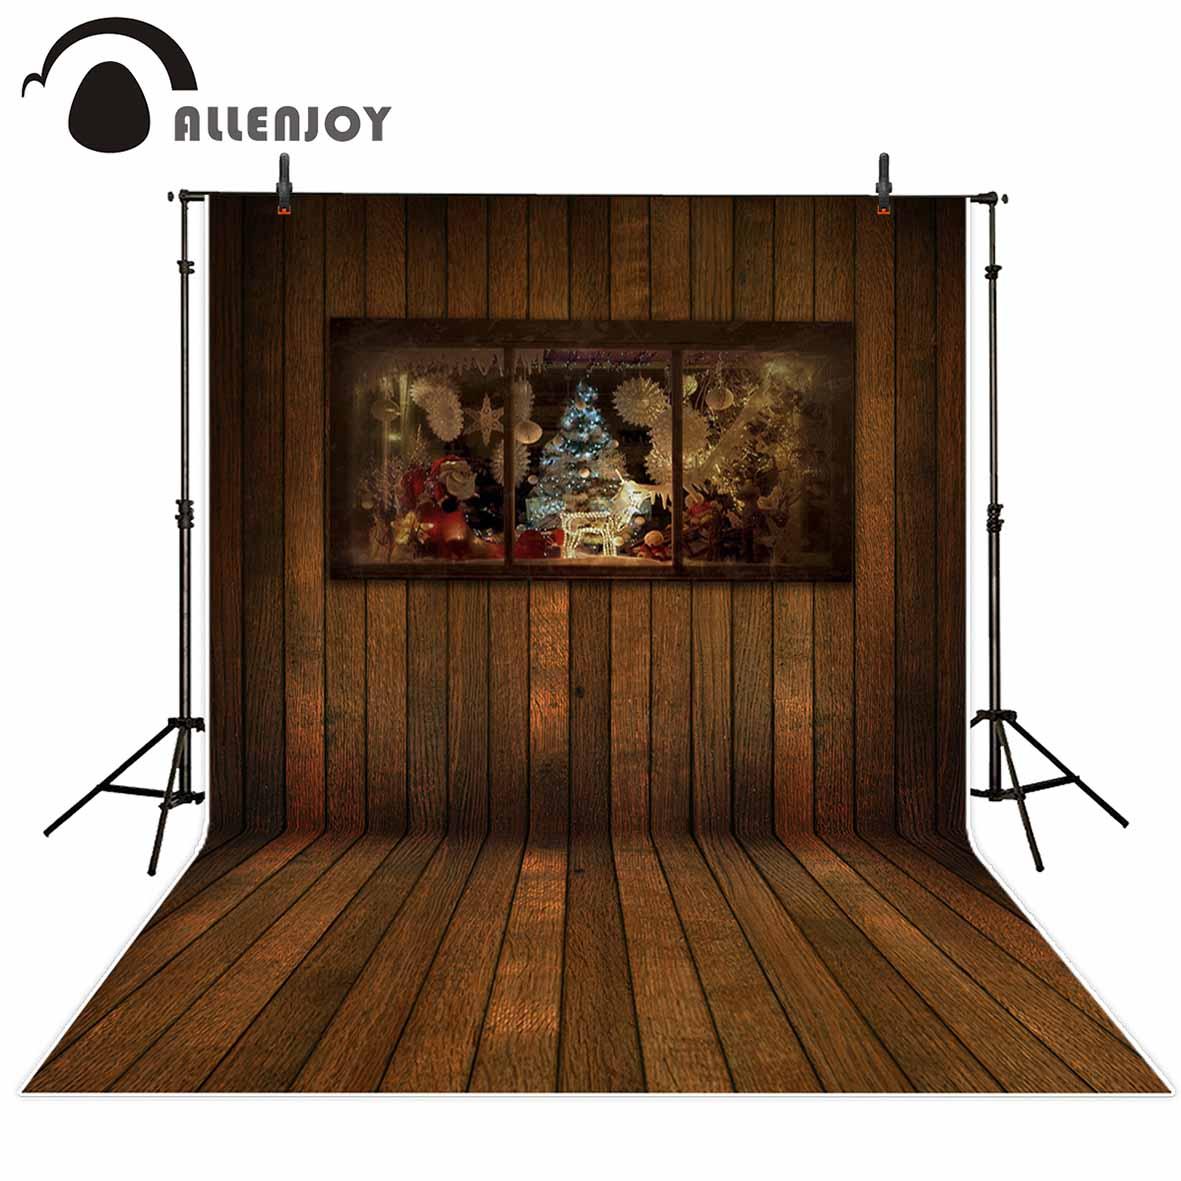 Allenjoy photography backdrops Christmas background Wooden window Christmas tree decoration Photo background Photographic studio allenjoy photo backdrops christmas tree bokeh wooden floor photography backgrounds photocall photographic photo studio